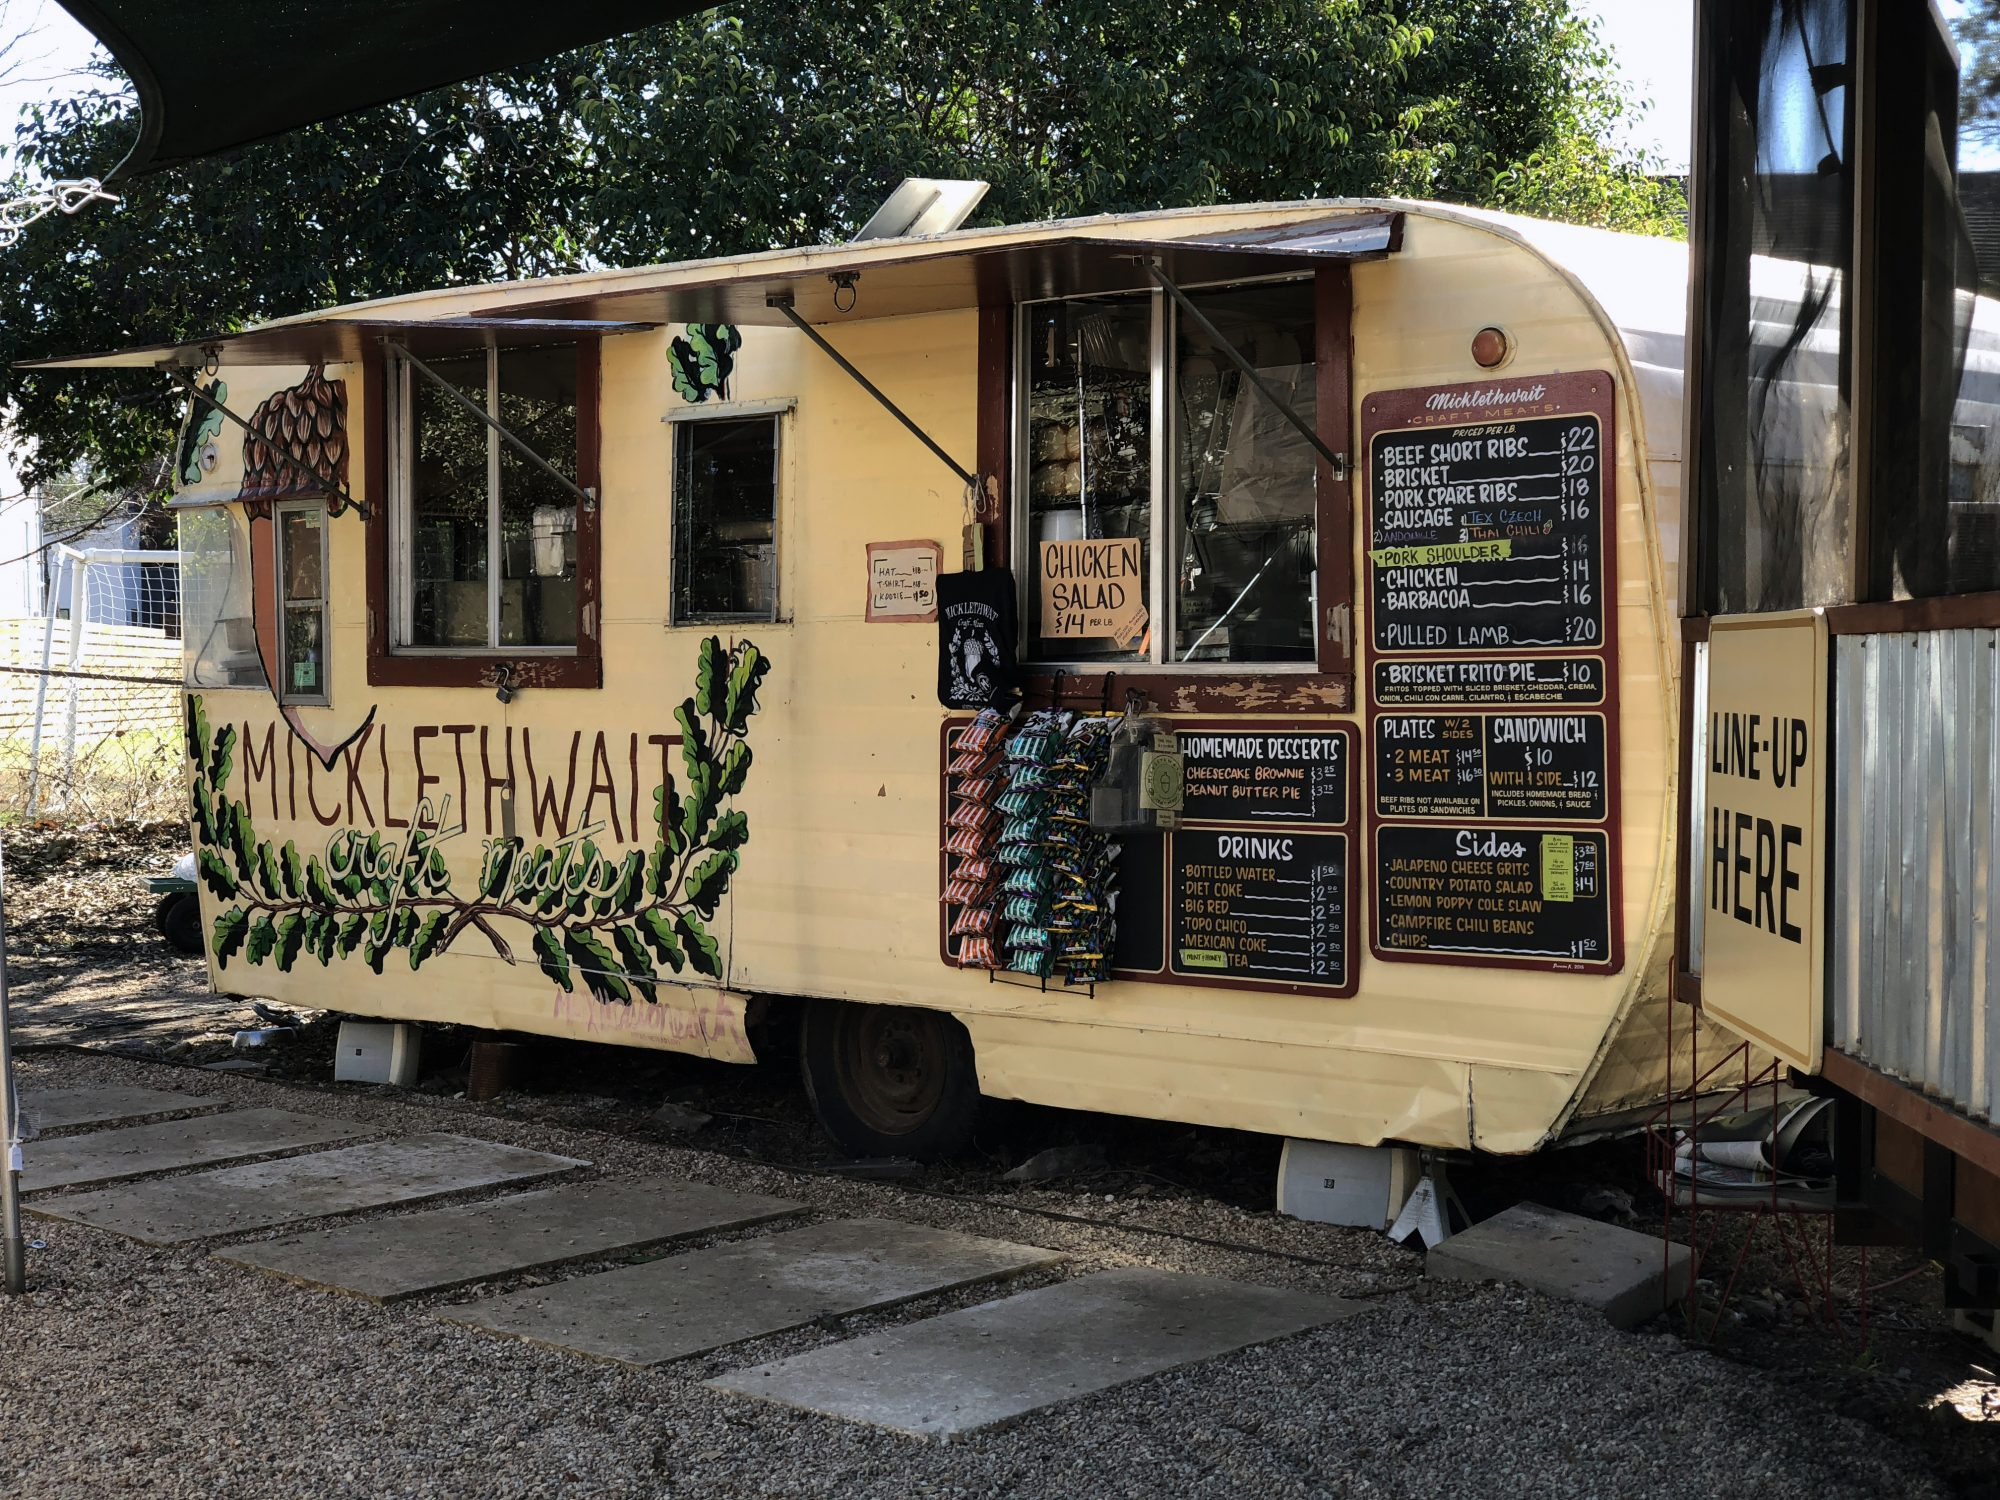 35. Micklethwait Craft Meats